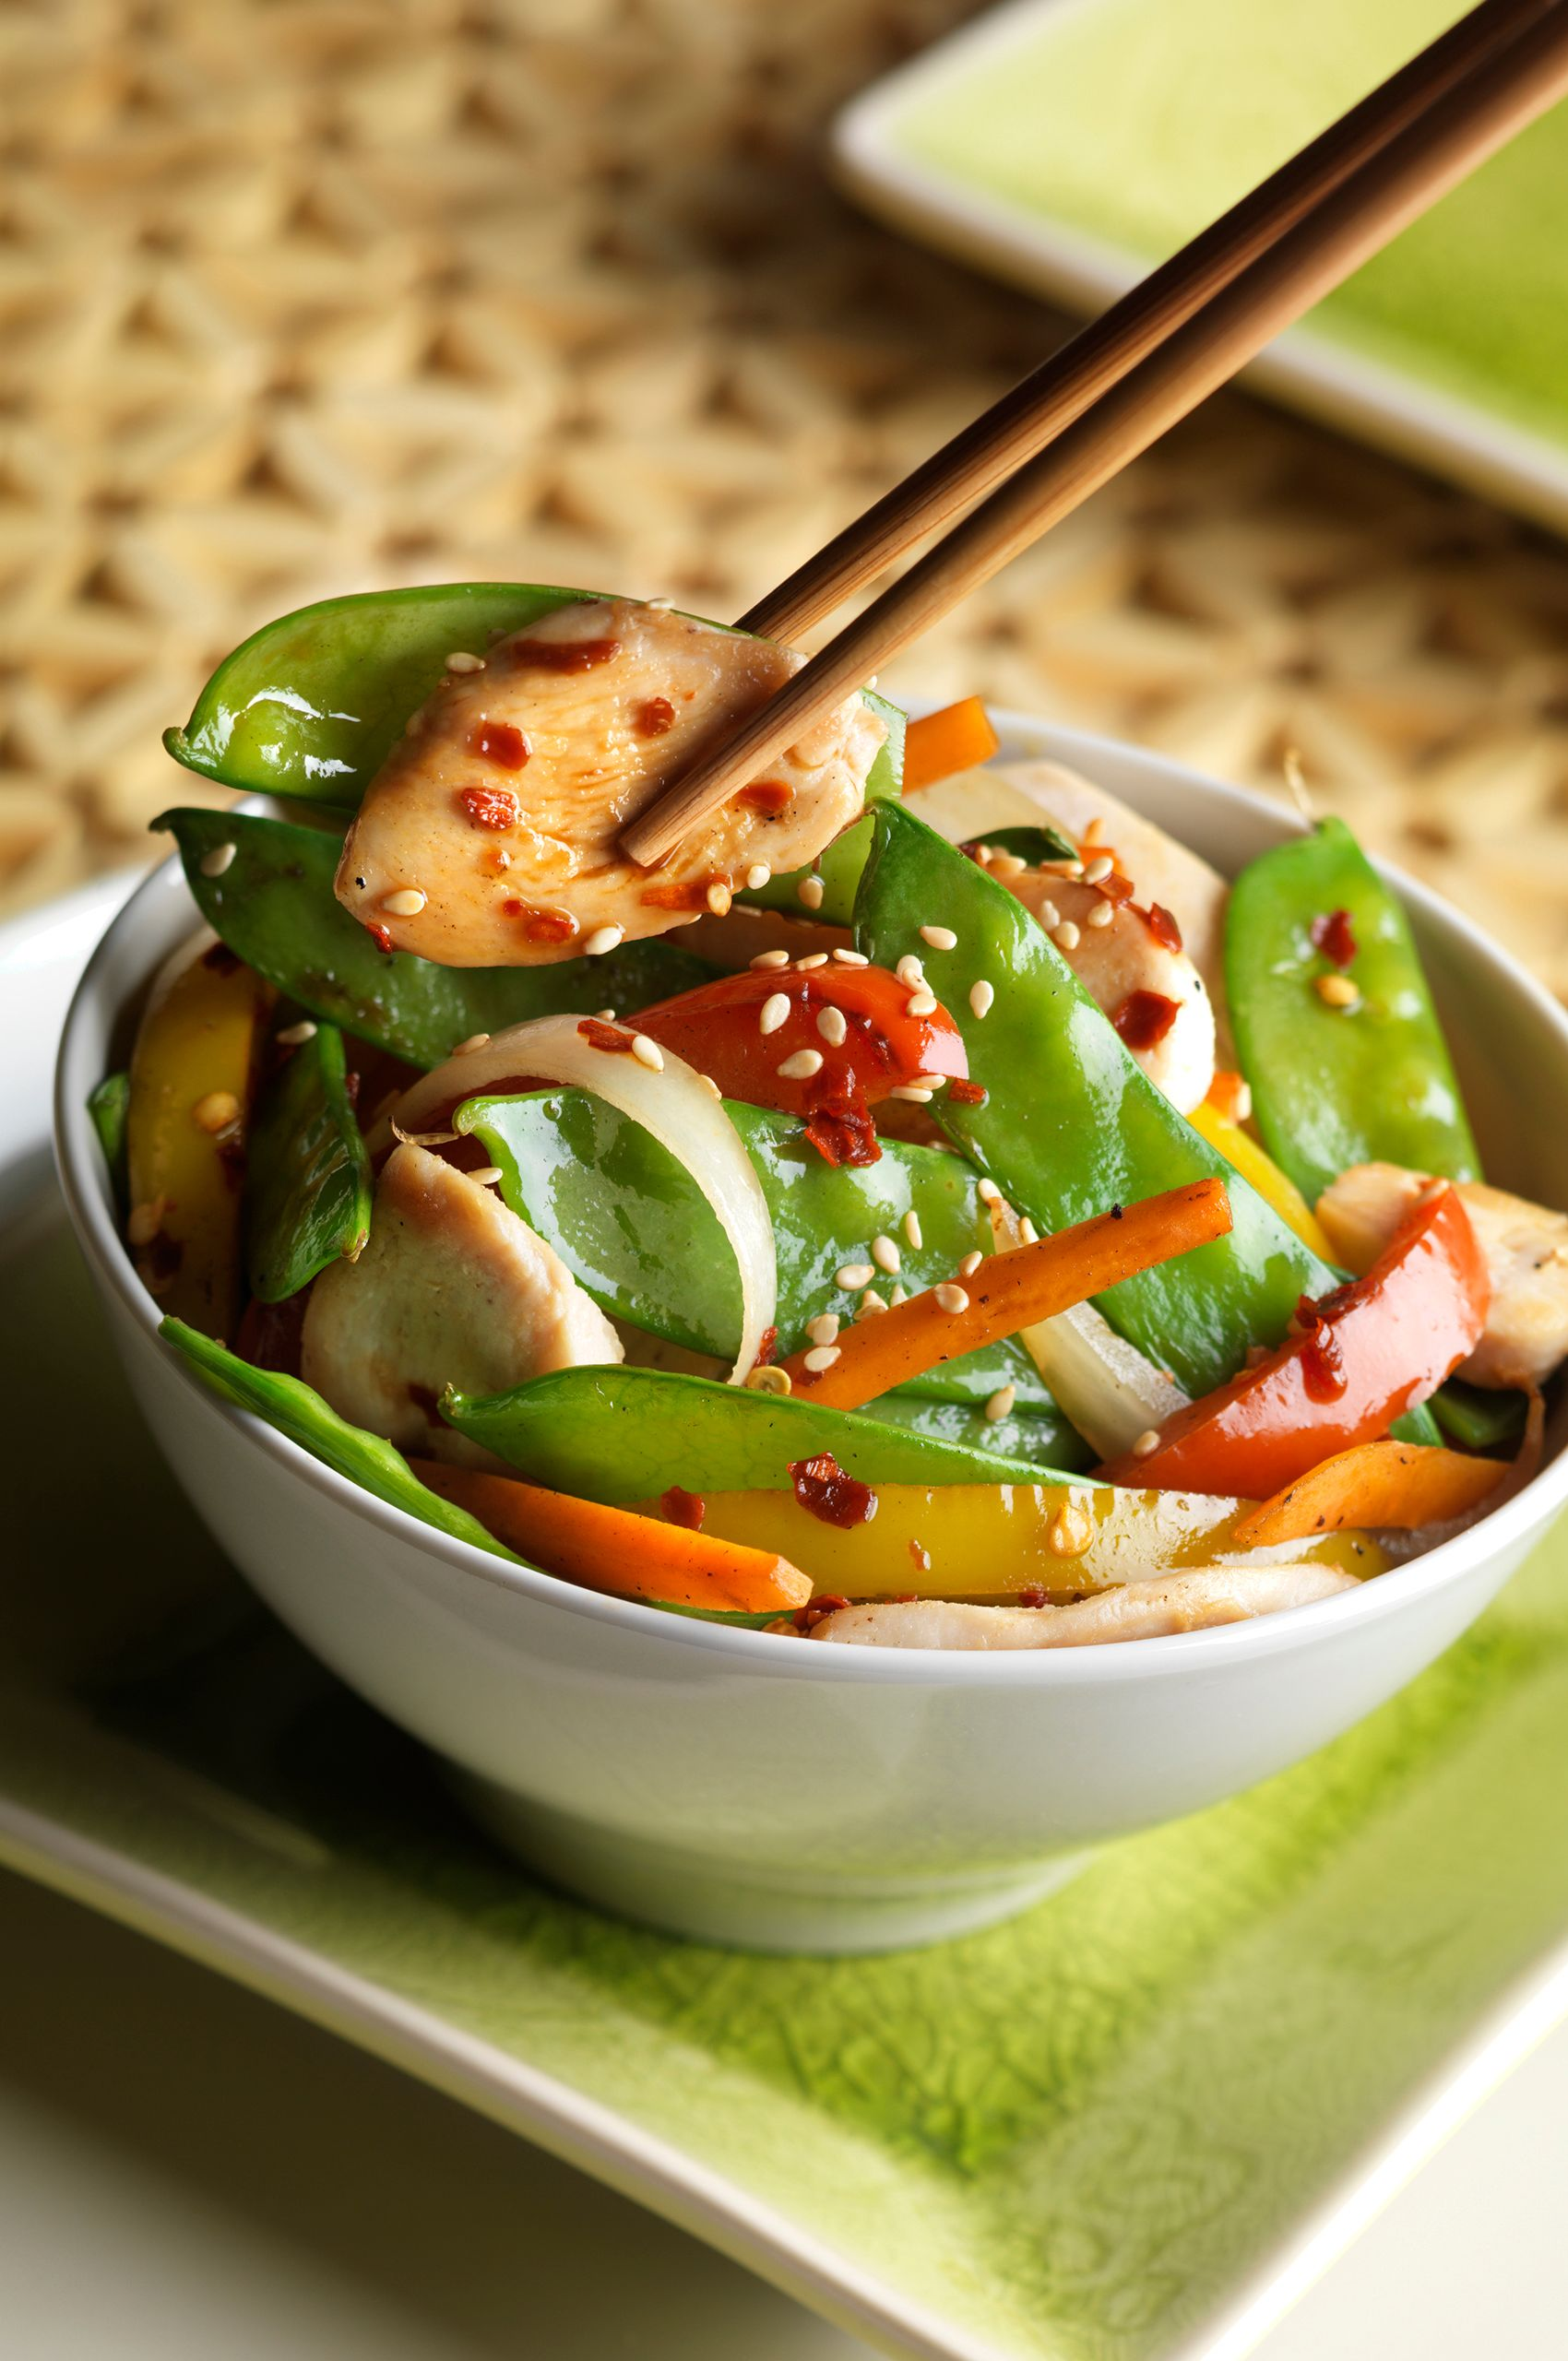 Stir-fry Veggies with Chicken